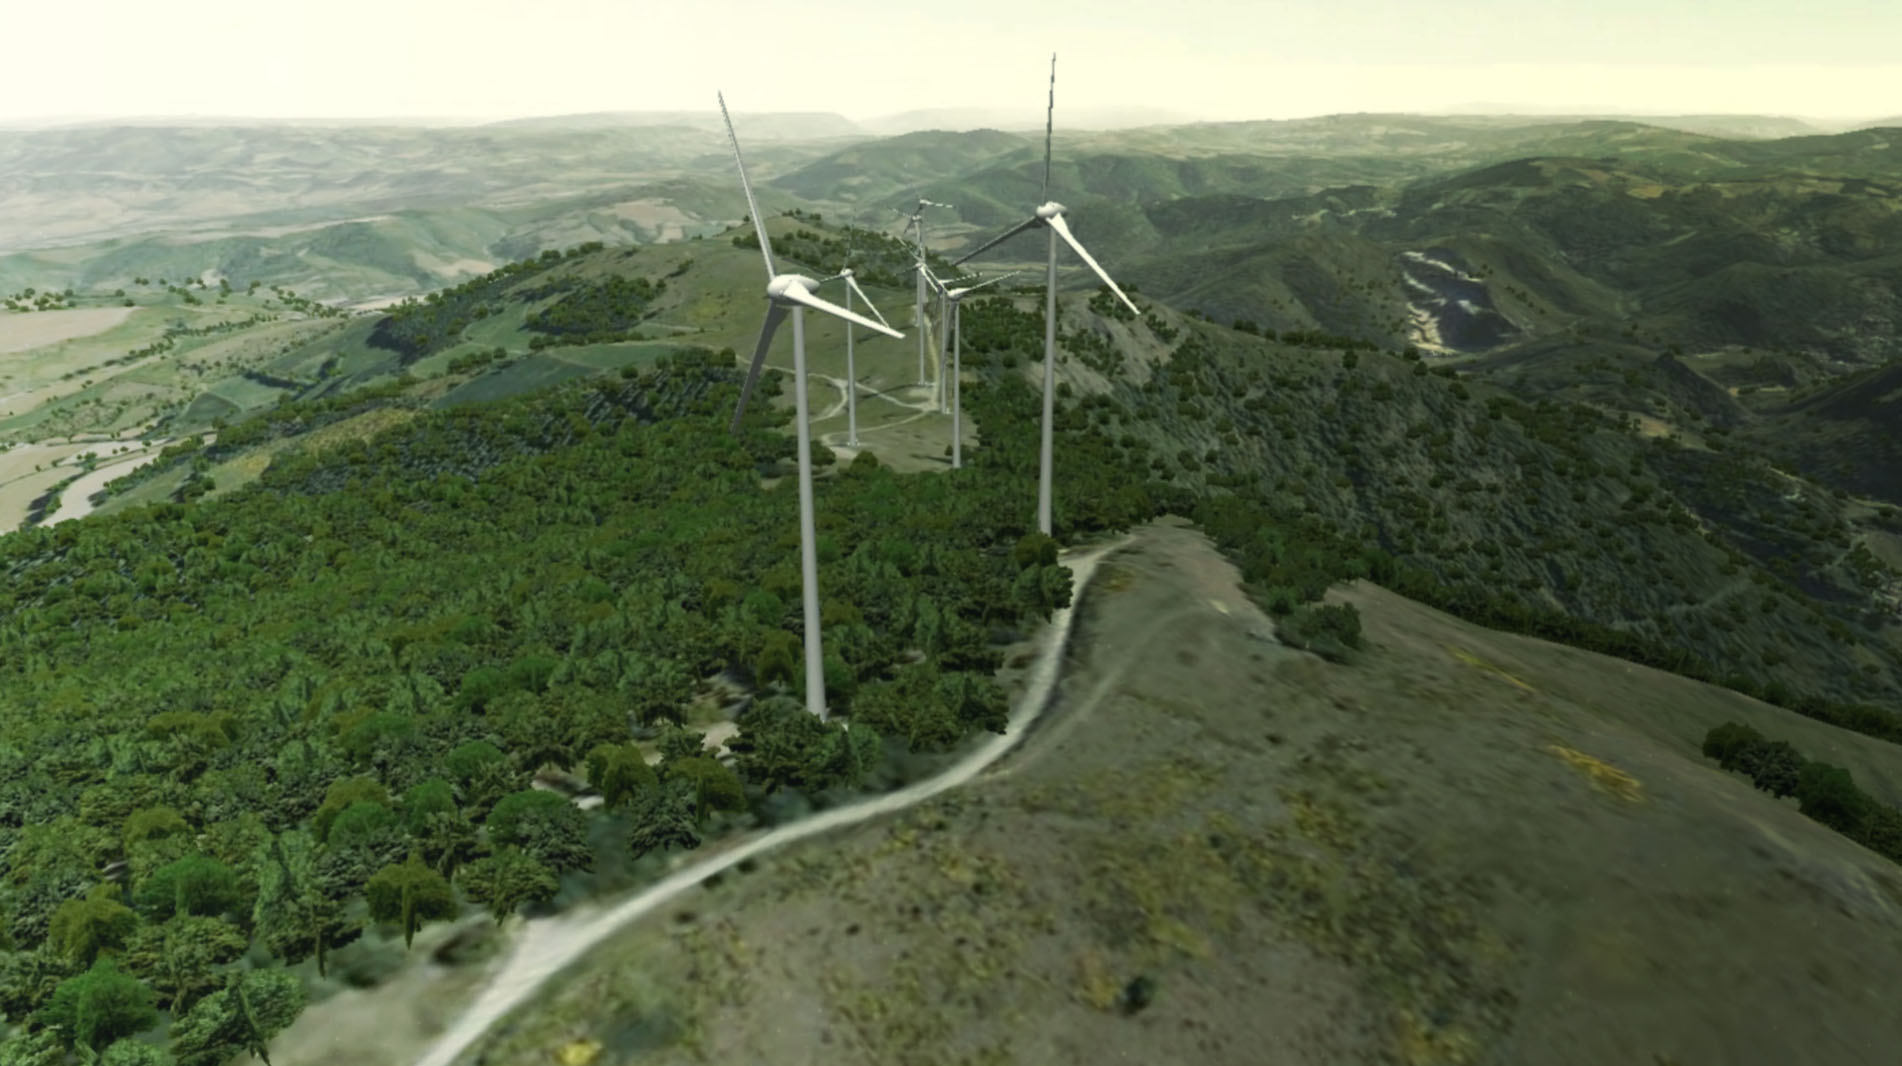 How new technologies can help assess impact of wind energy projects on the local population